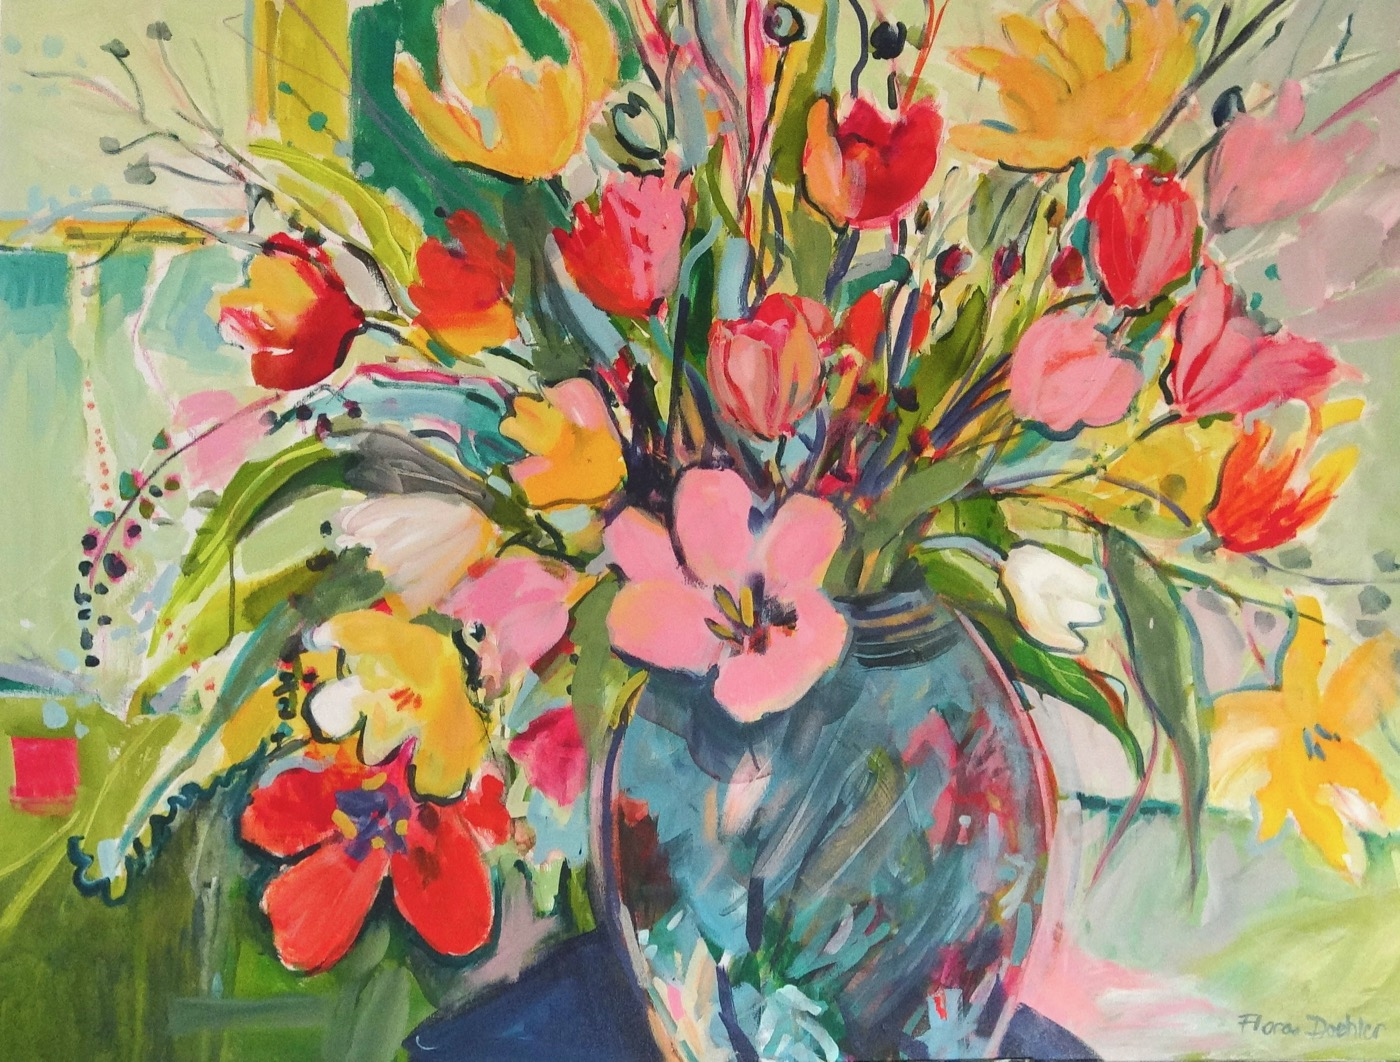 Painting Tulips in a Room of One's Own